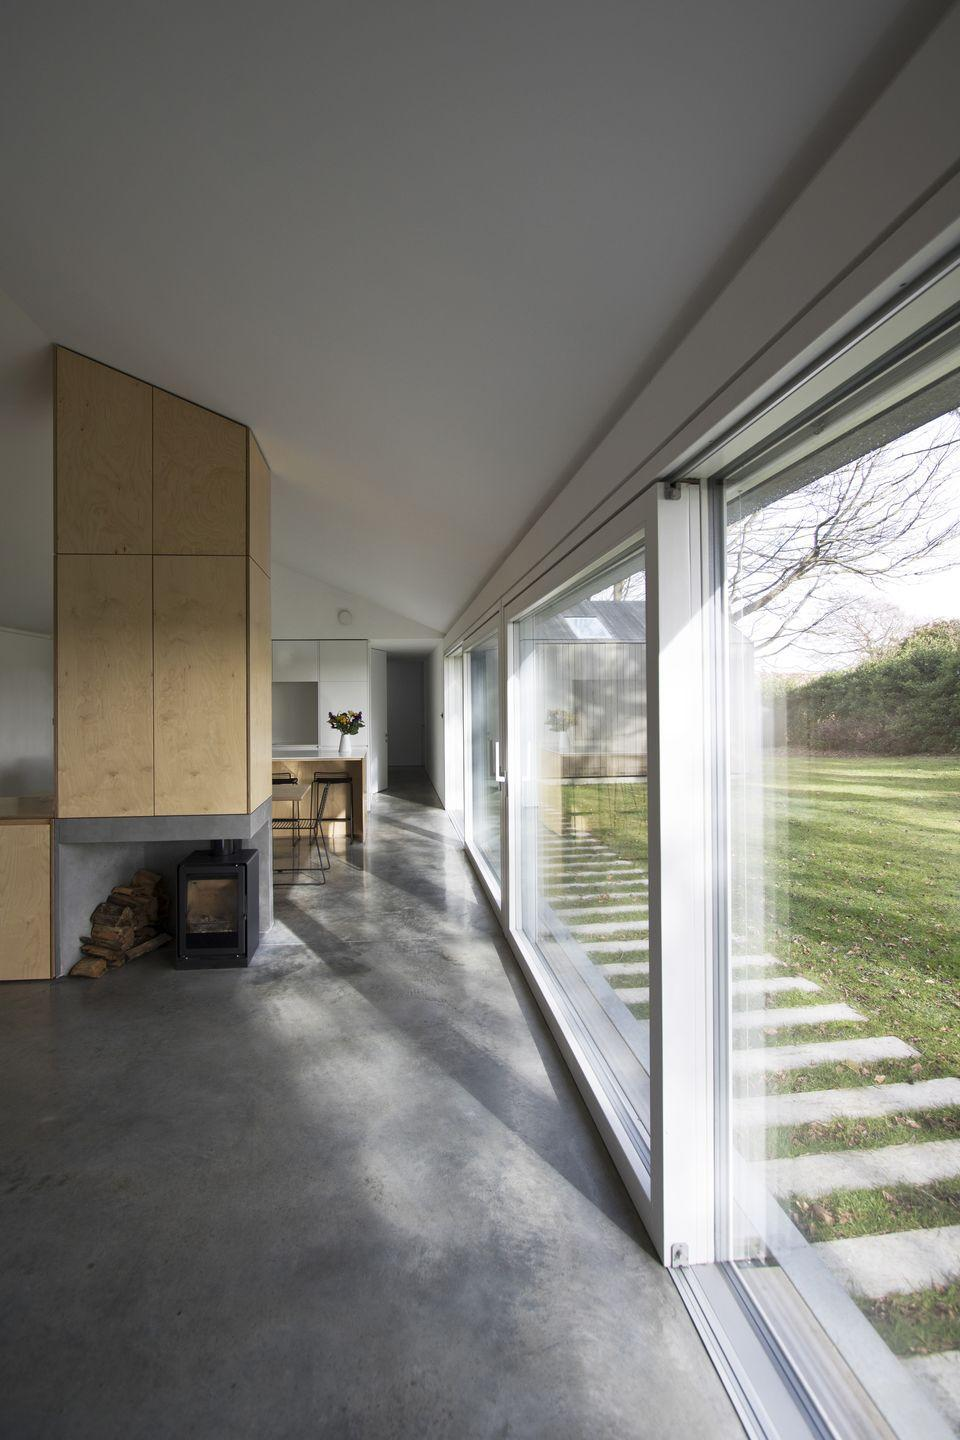 """<p>Charles Meloy cut his teeth working for the Richard Rogers Partnership, before founding his eponymous studio. Having built his own certified Passivhaus on the South Downs (pictured), the architect proves it's possible to create sustainable homes without compromising on design quality.</p><p><strong>They say </strong>'It is our belief that if we expend time and money in building, that we should do so with vigour and intent. Truly sustainable architecture should be undertaken to maximise both the life of the building and the wellbeing of those who inhabit it.' <a href=""""https://meloy.co.uk/"""" rel=""""nofollow noopener"""" target=""""_blank"""" data-ylk=""""slk:meloy.co.uk"""" class=""""link rapid-noclick-resp"""">meloy.co.uk</a></p>"""